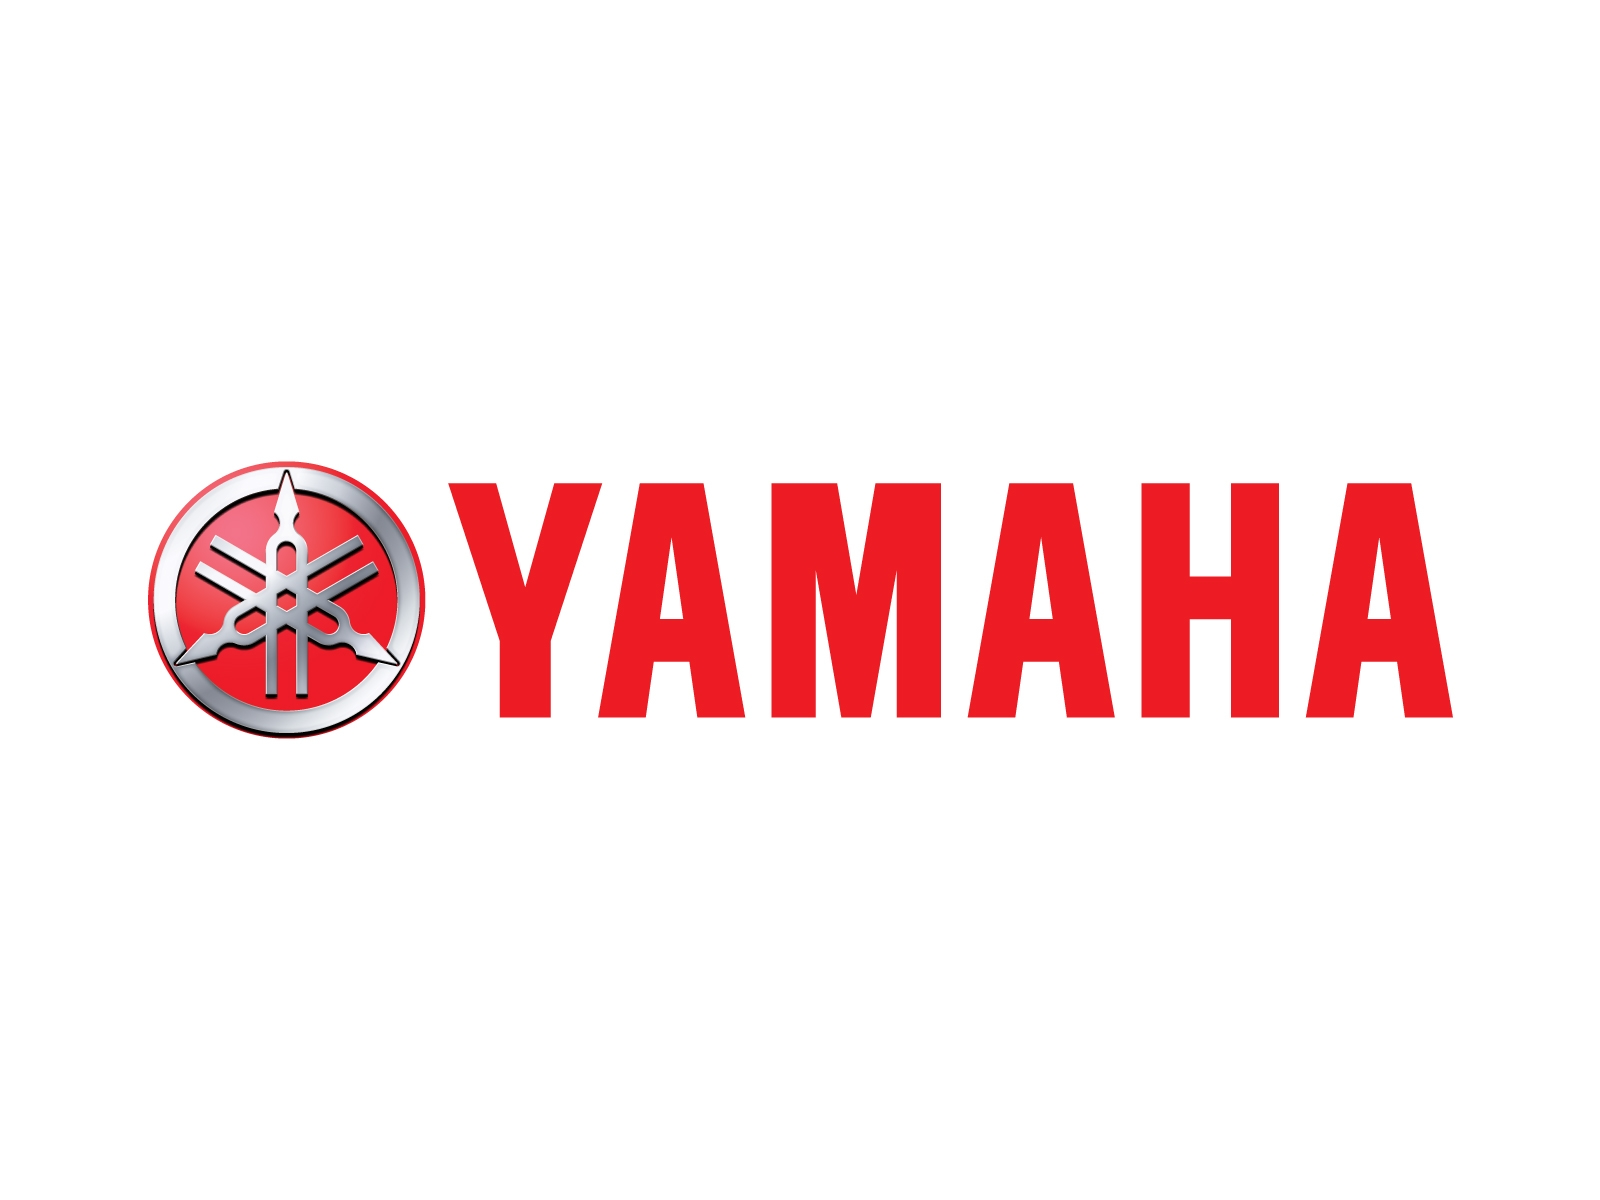 yamaha-logo-wallpaper-4